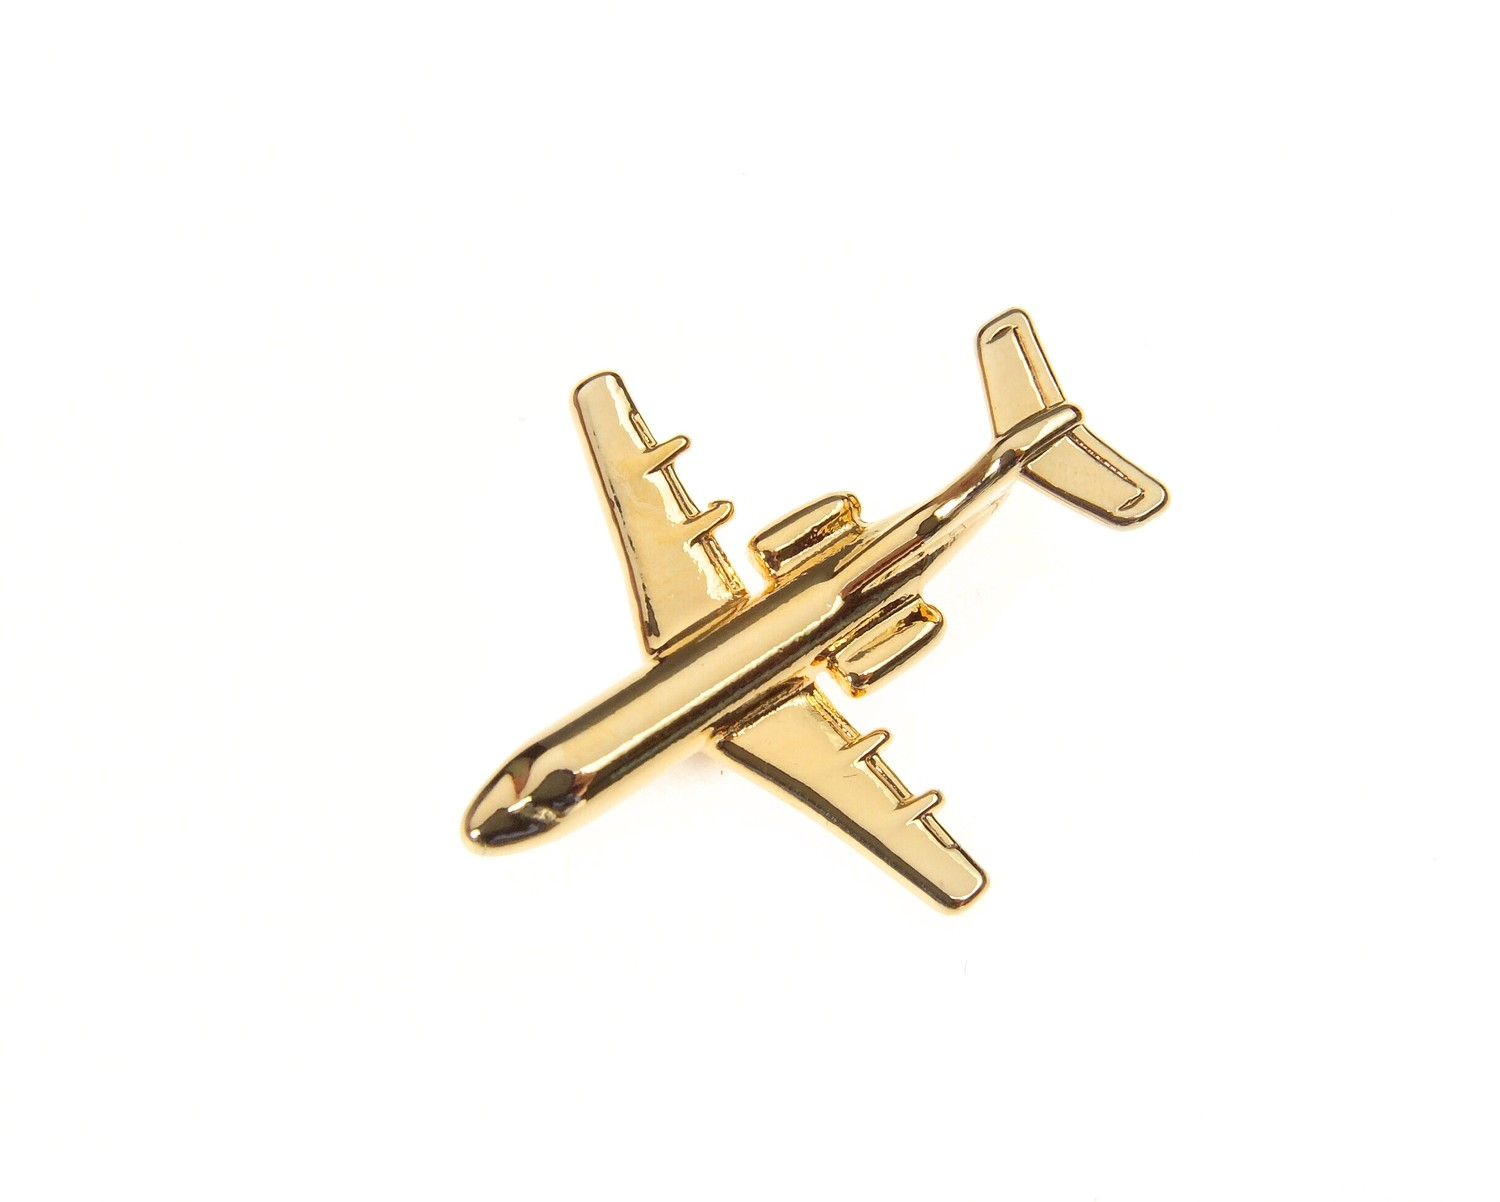 Fokker 28 / 70 Gold Plated Tie / Lapel Pin